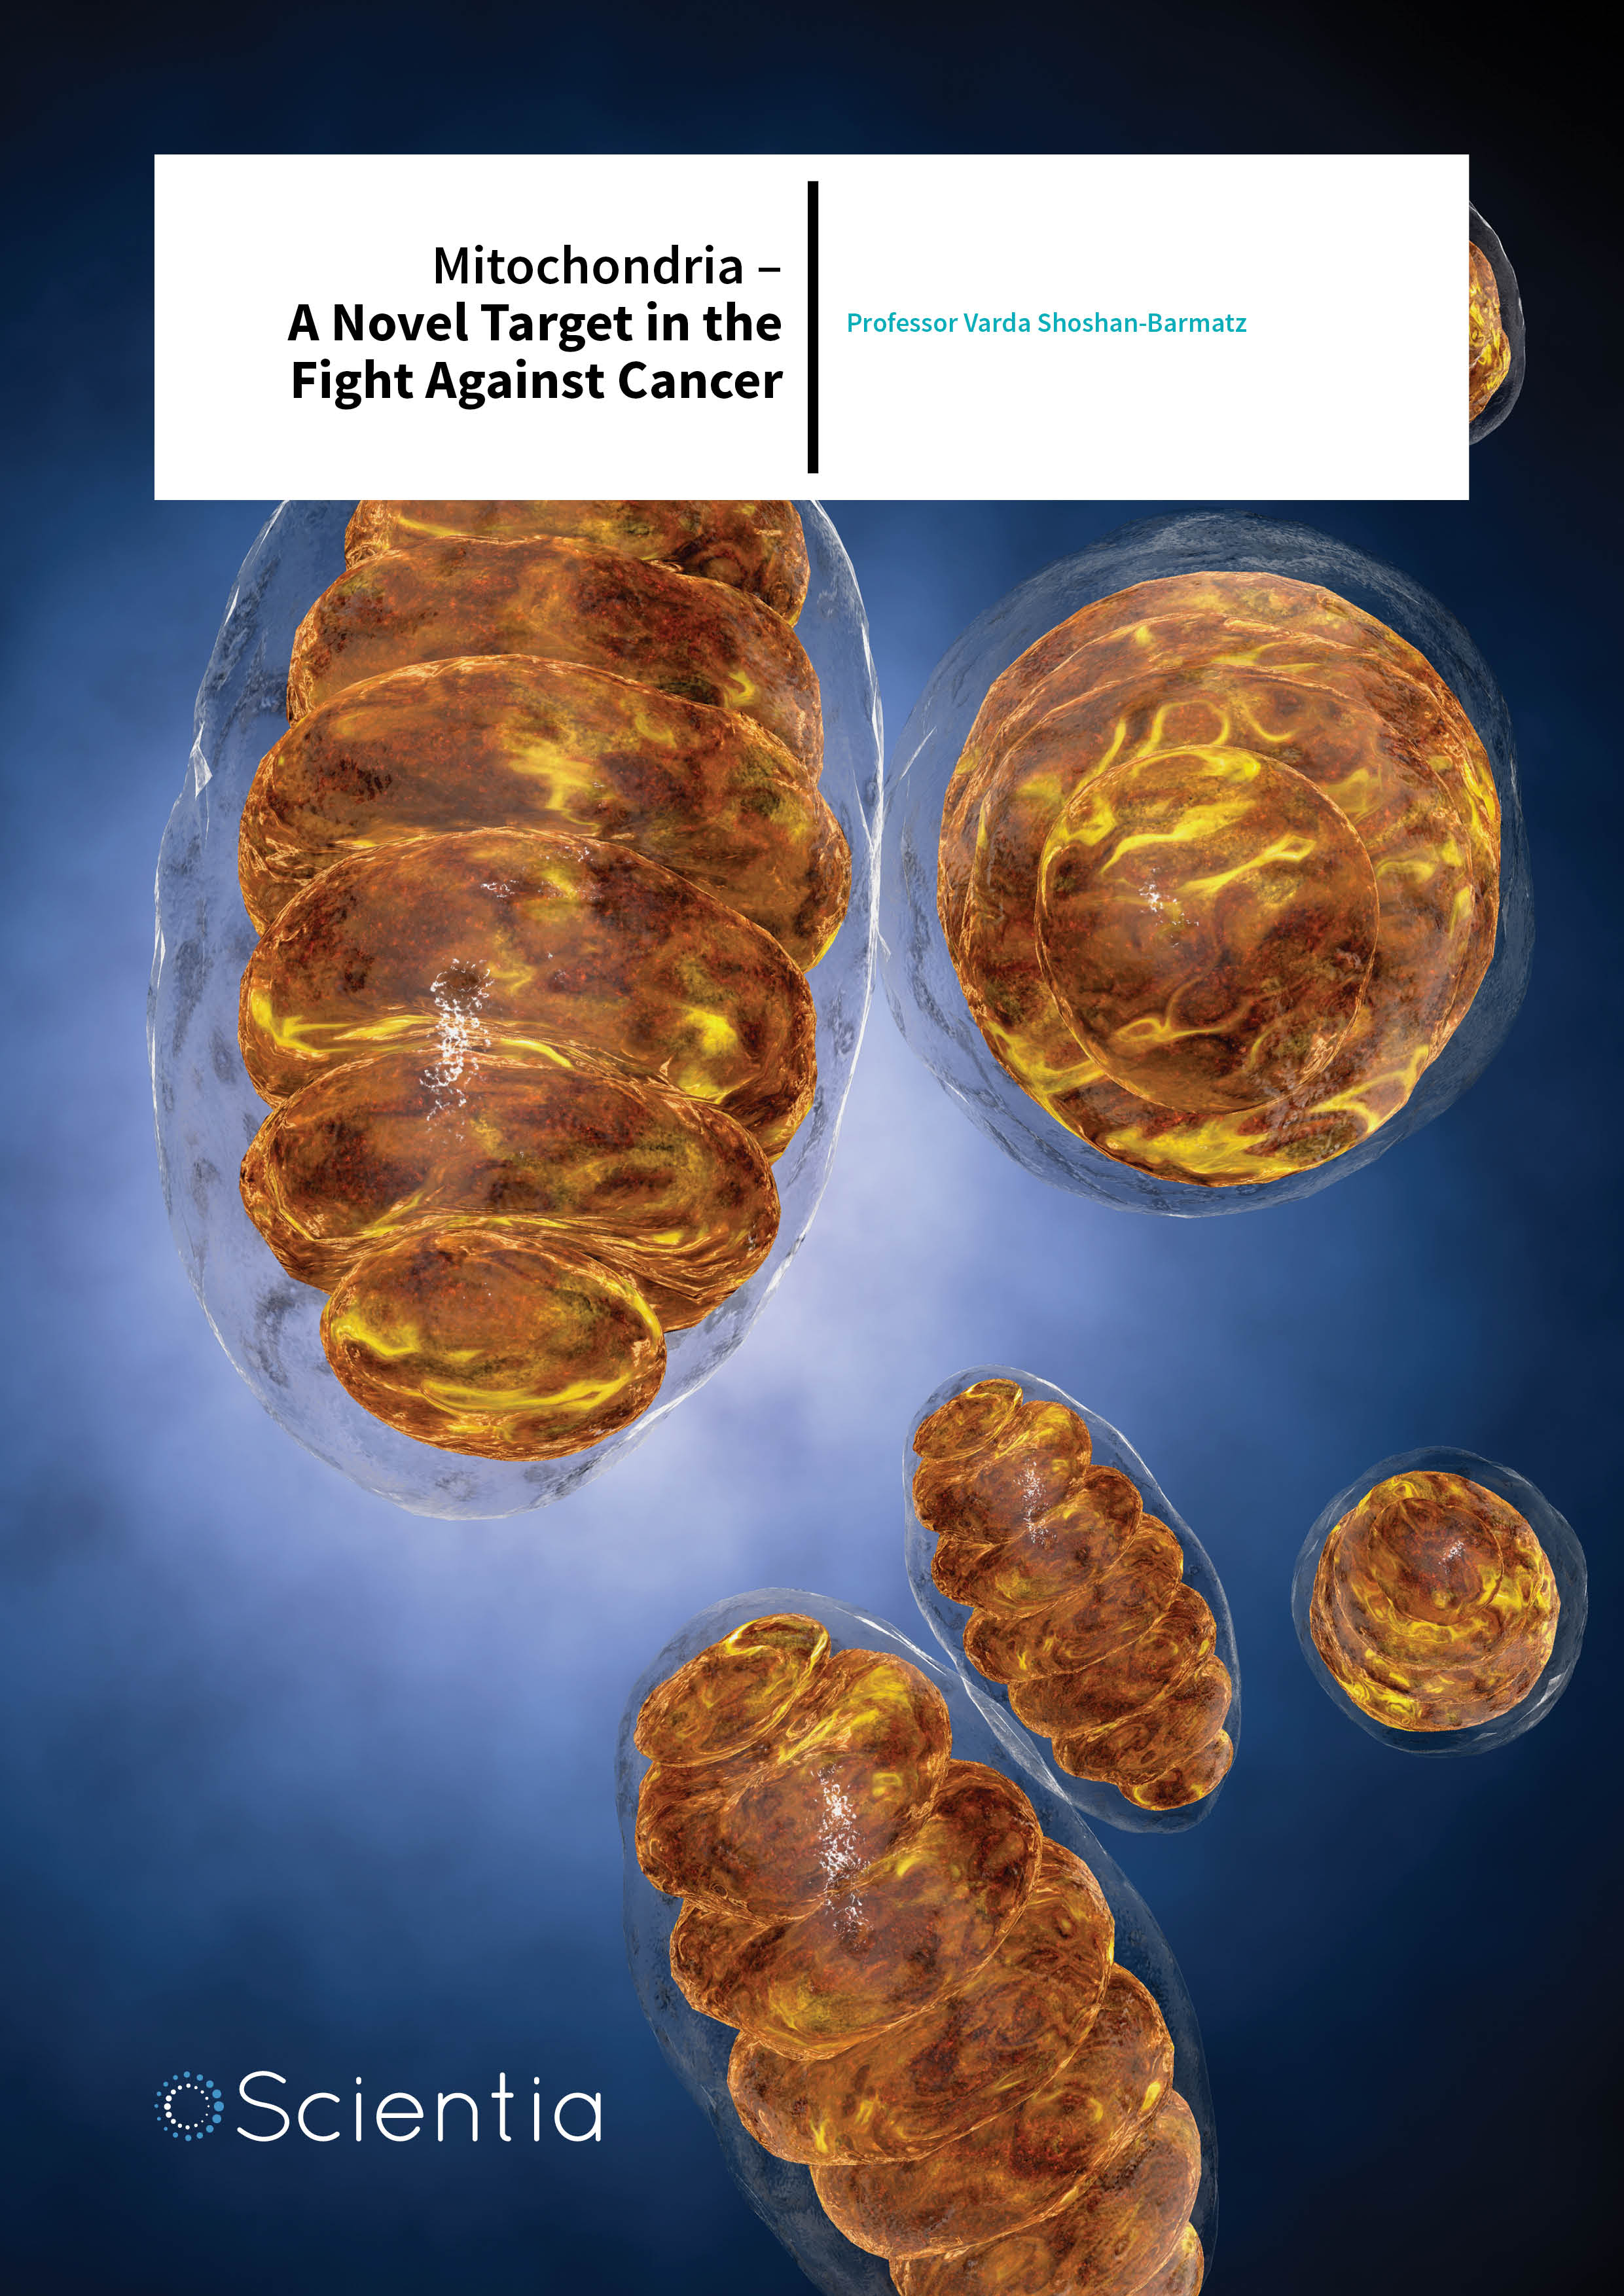 Professor Varda Shoshan-Barmatz – Mitochondria – A Novel Target in the Fight Against Cancer